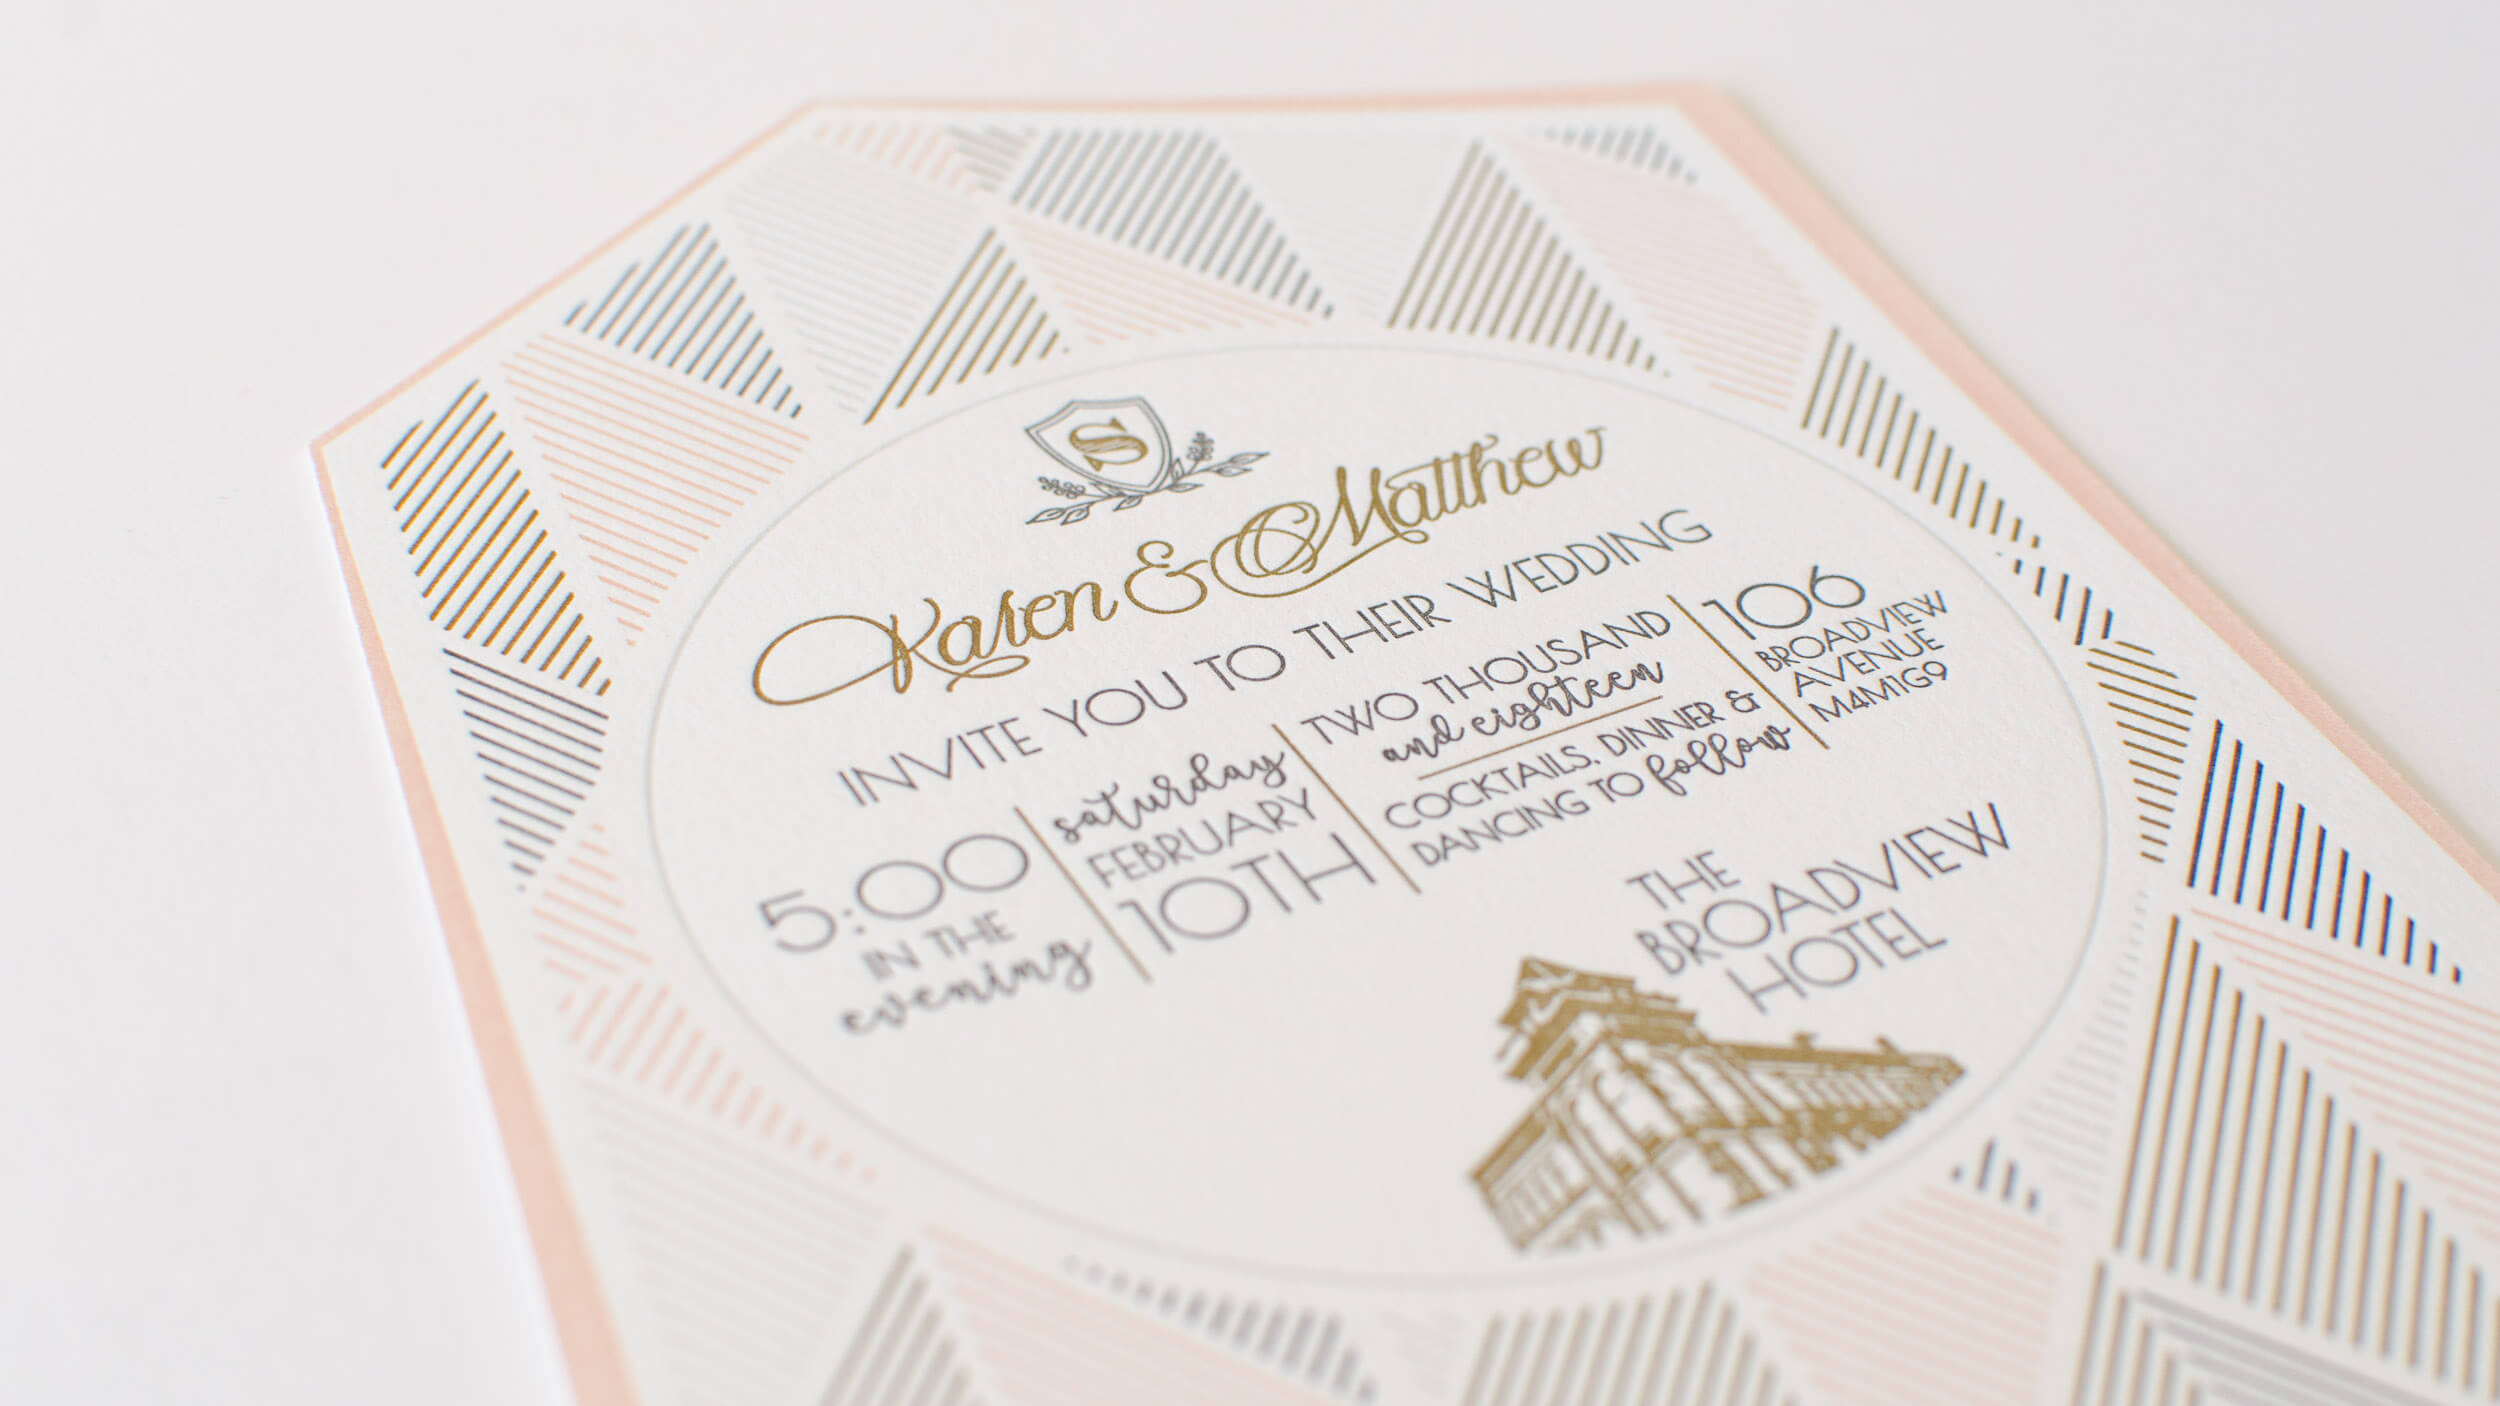 KarenMatthew_Letterpress-Wedding-Invite-3.jpg